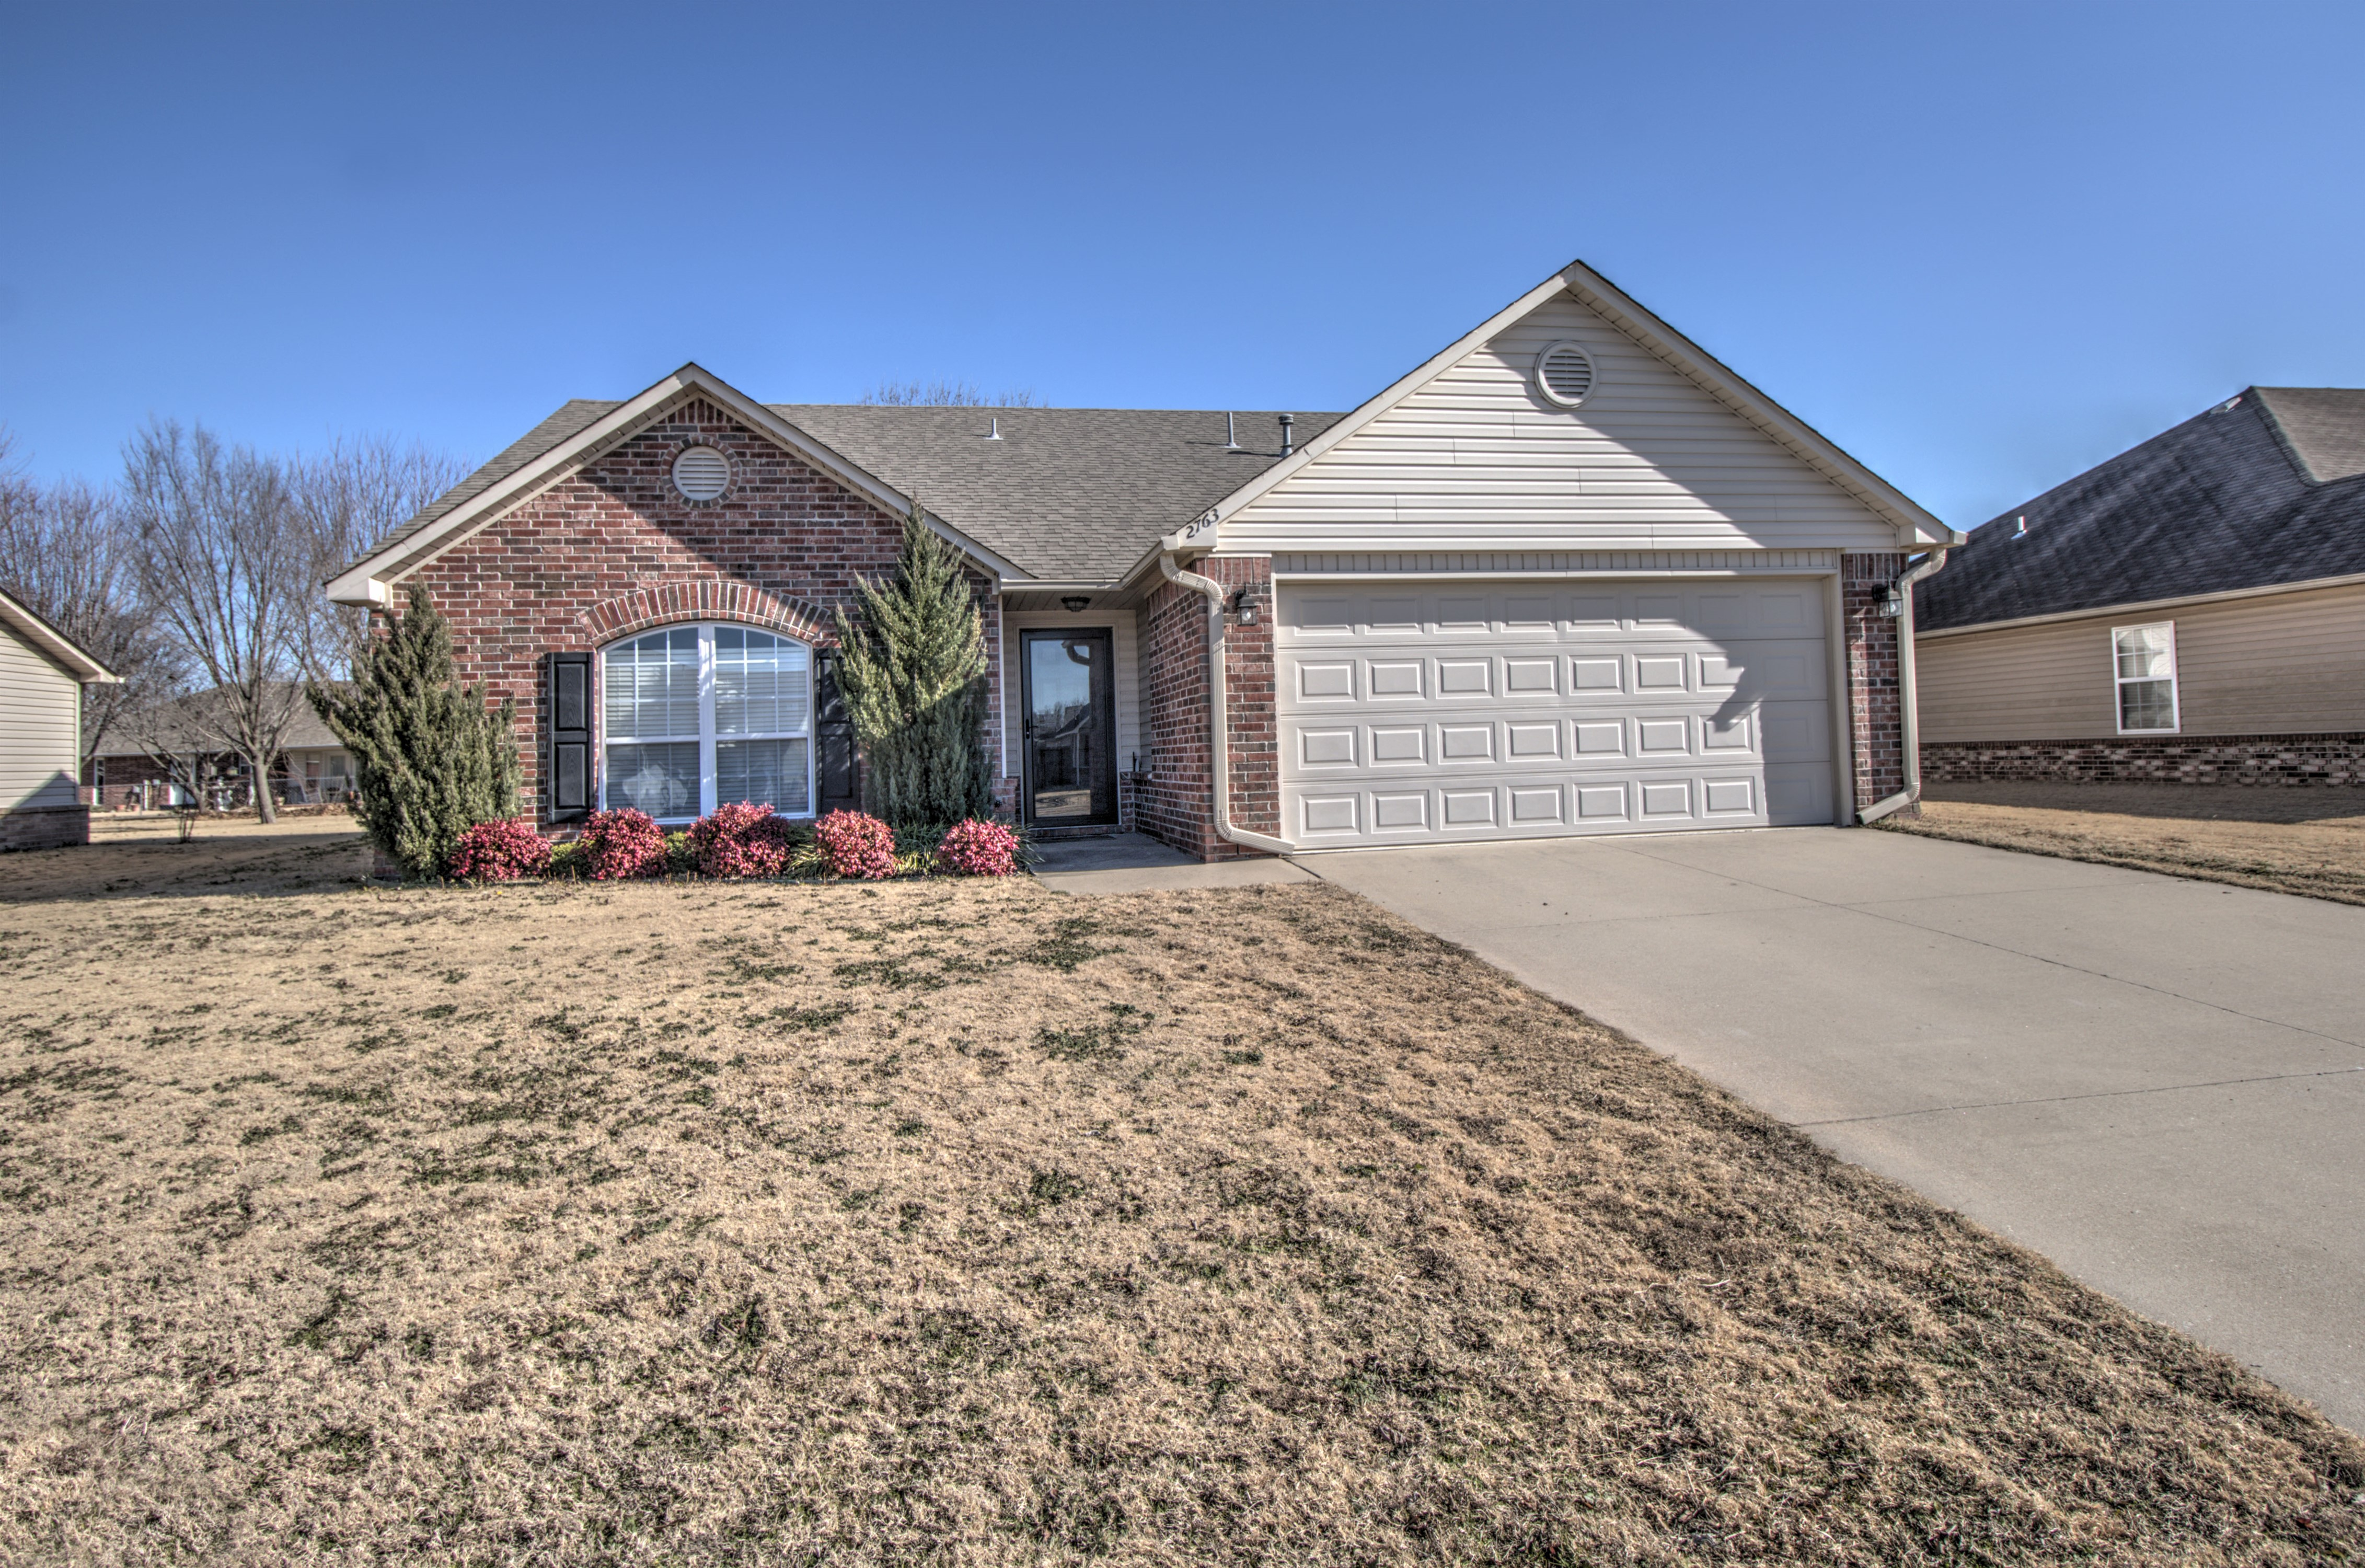 2763 Summerfield Place Property Photo 1